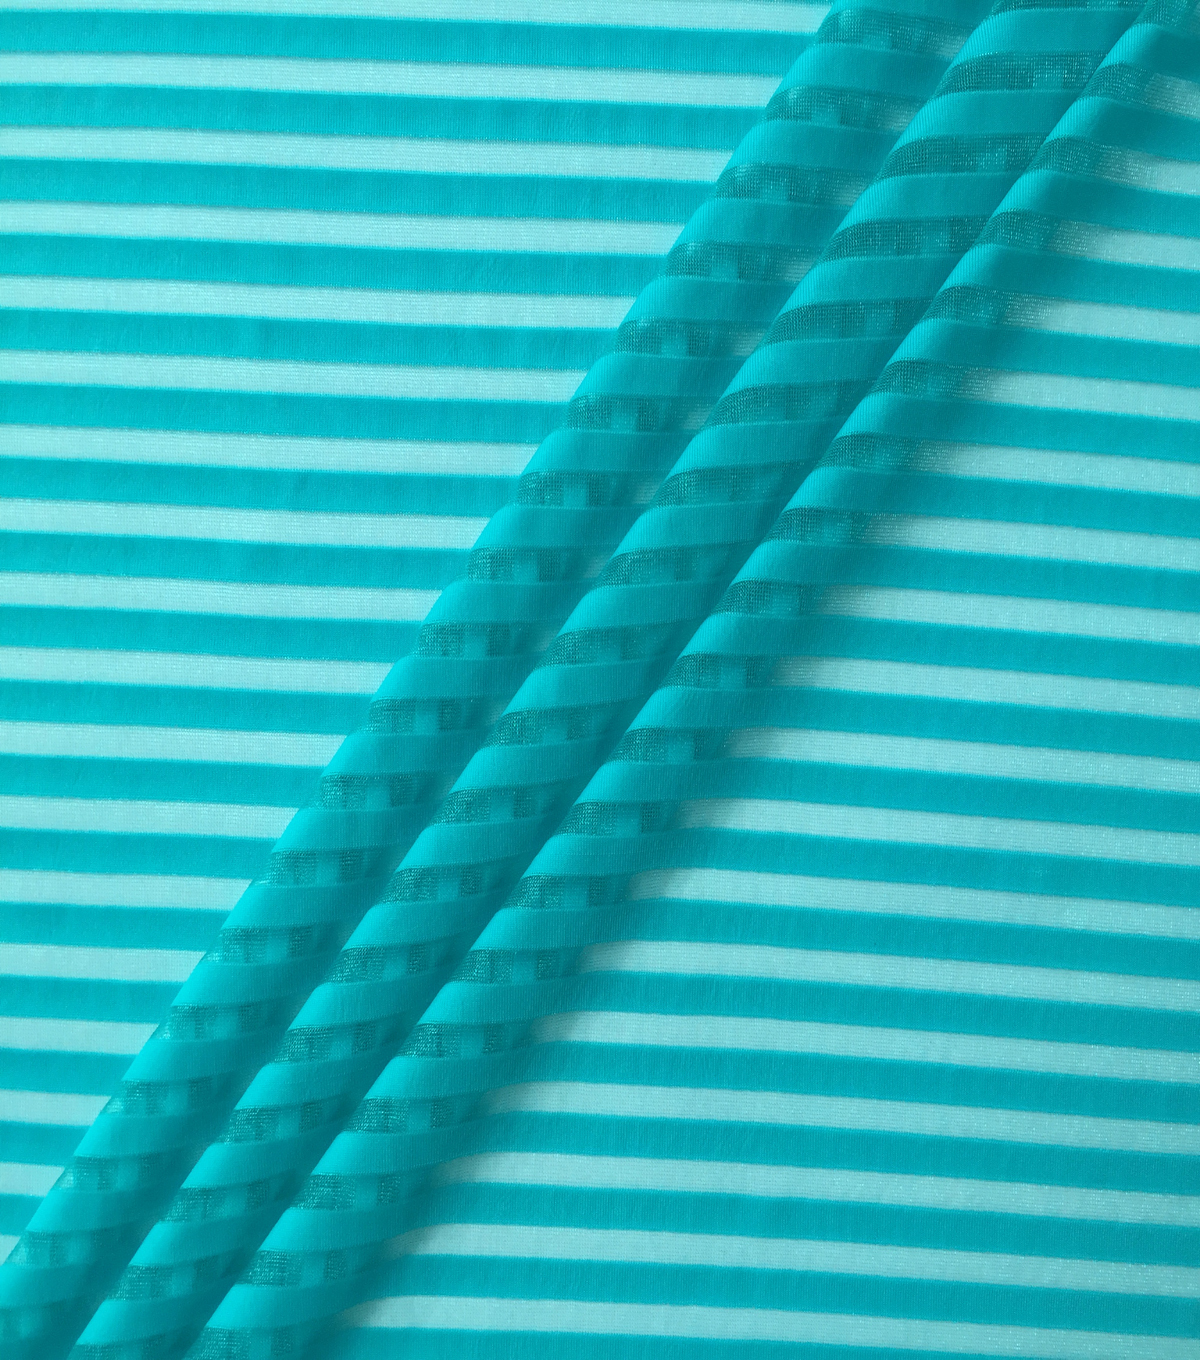 Performance Apparel Fabric-Peacock Blue Shadow Stripe